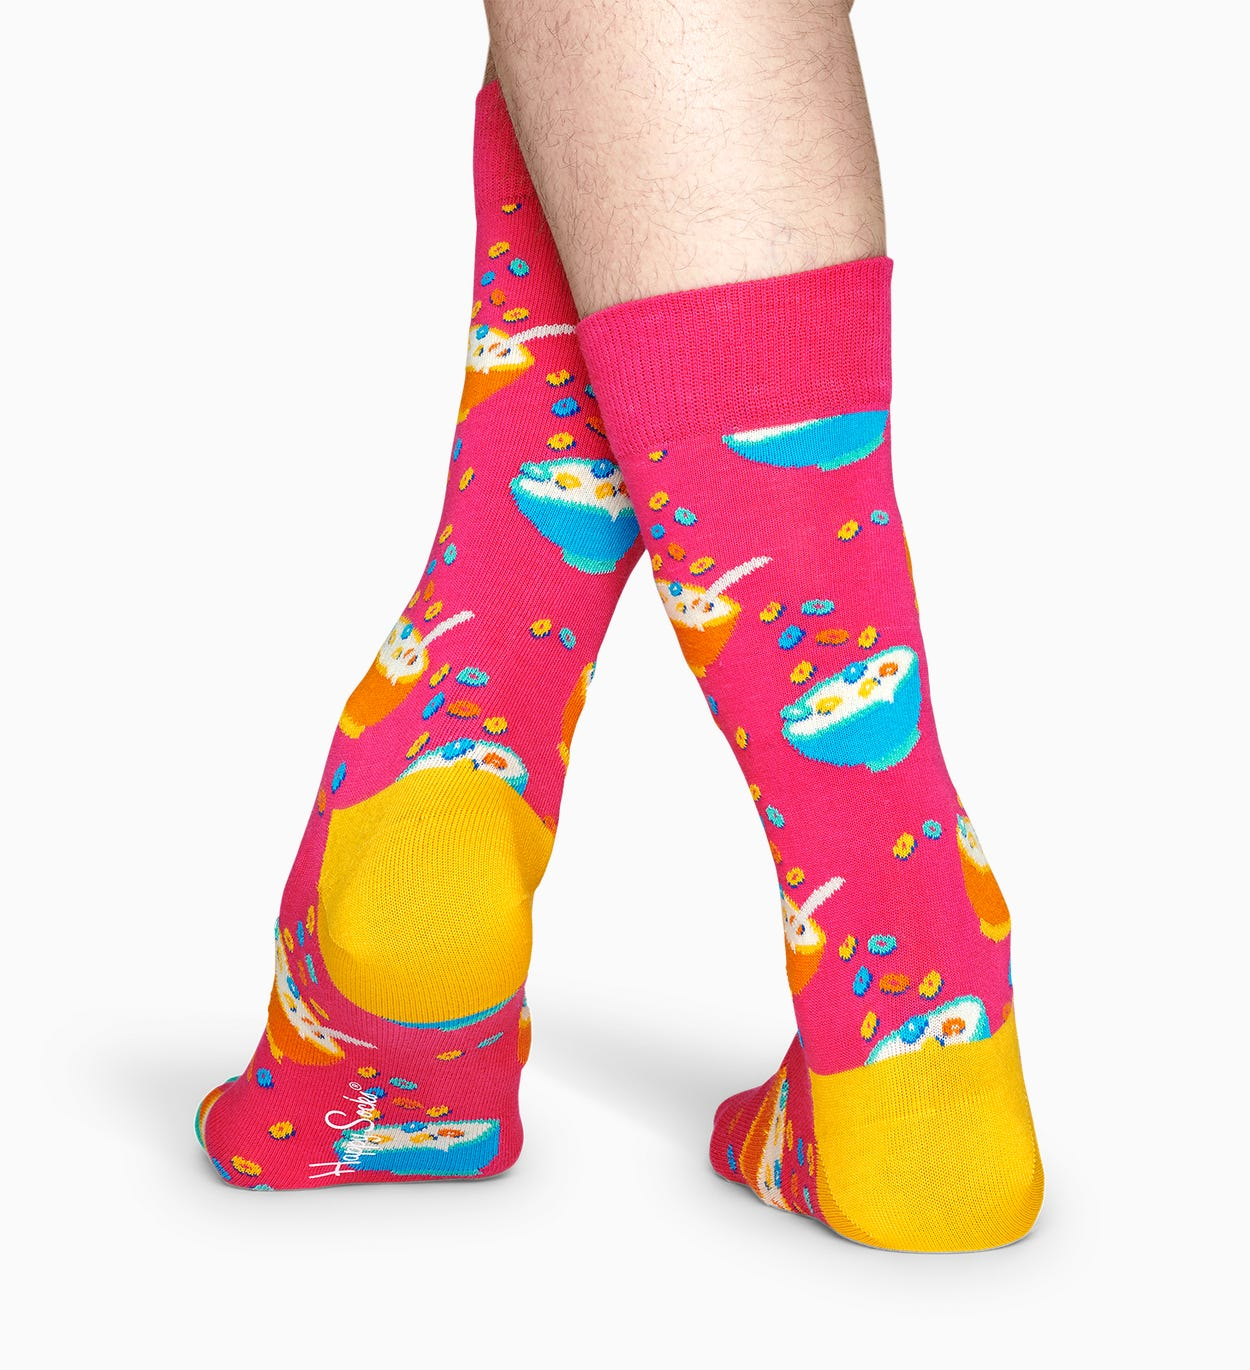 The breakfast sock of champions! These fun Fruit Loops socks in vibrant bubblegum pink are packed full of energy. The perfect start to your day, this su…